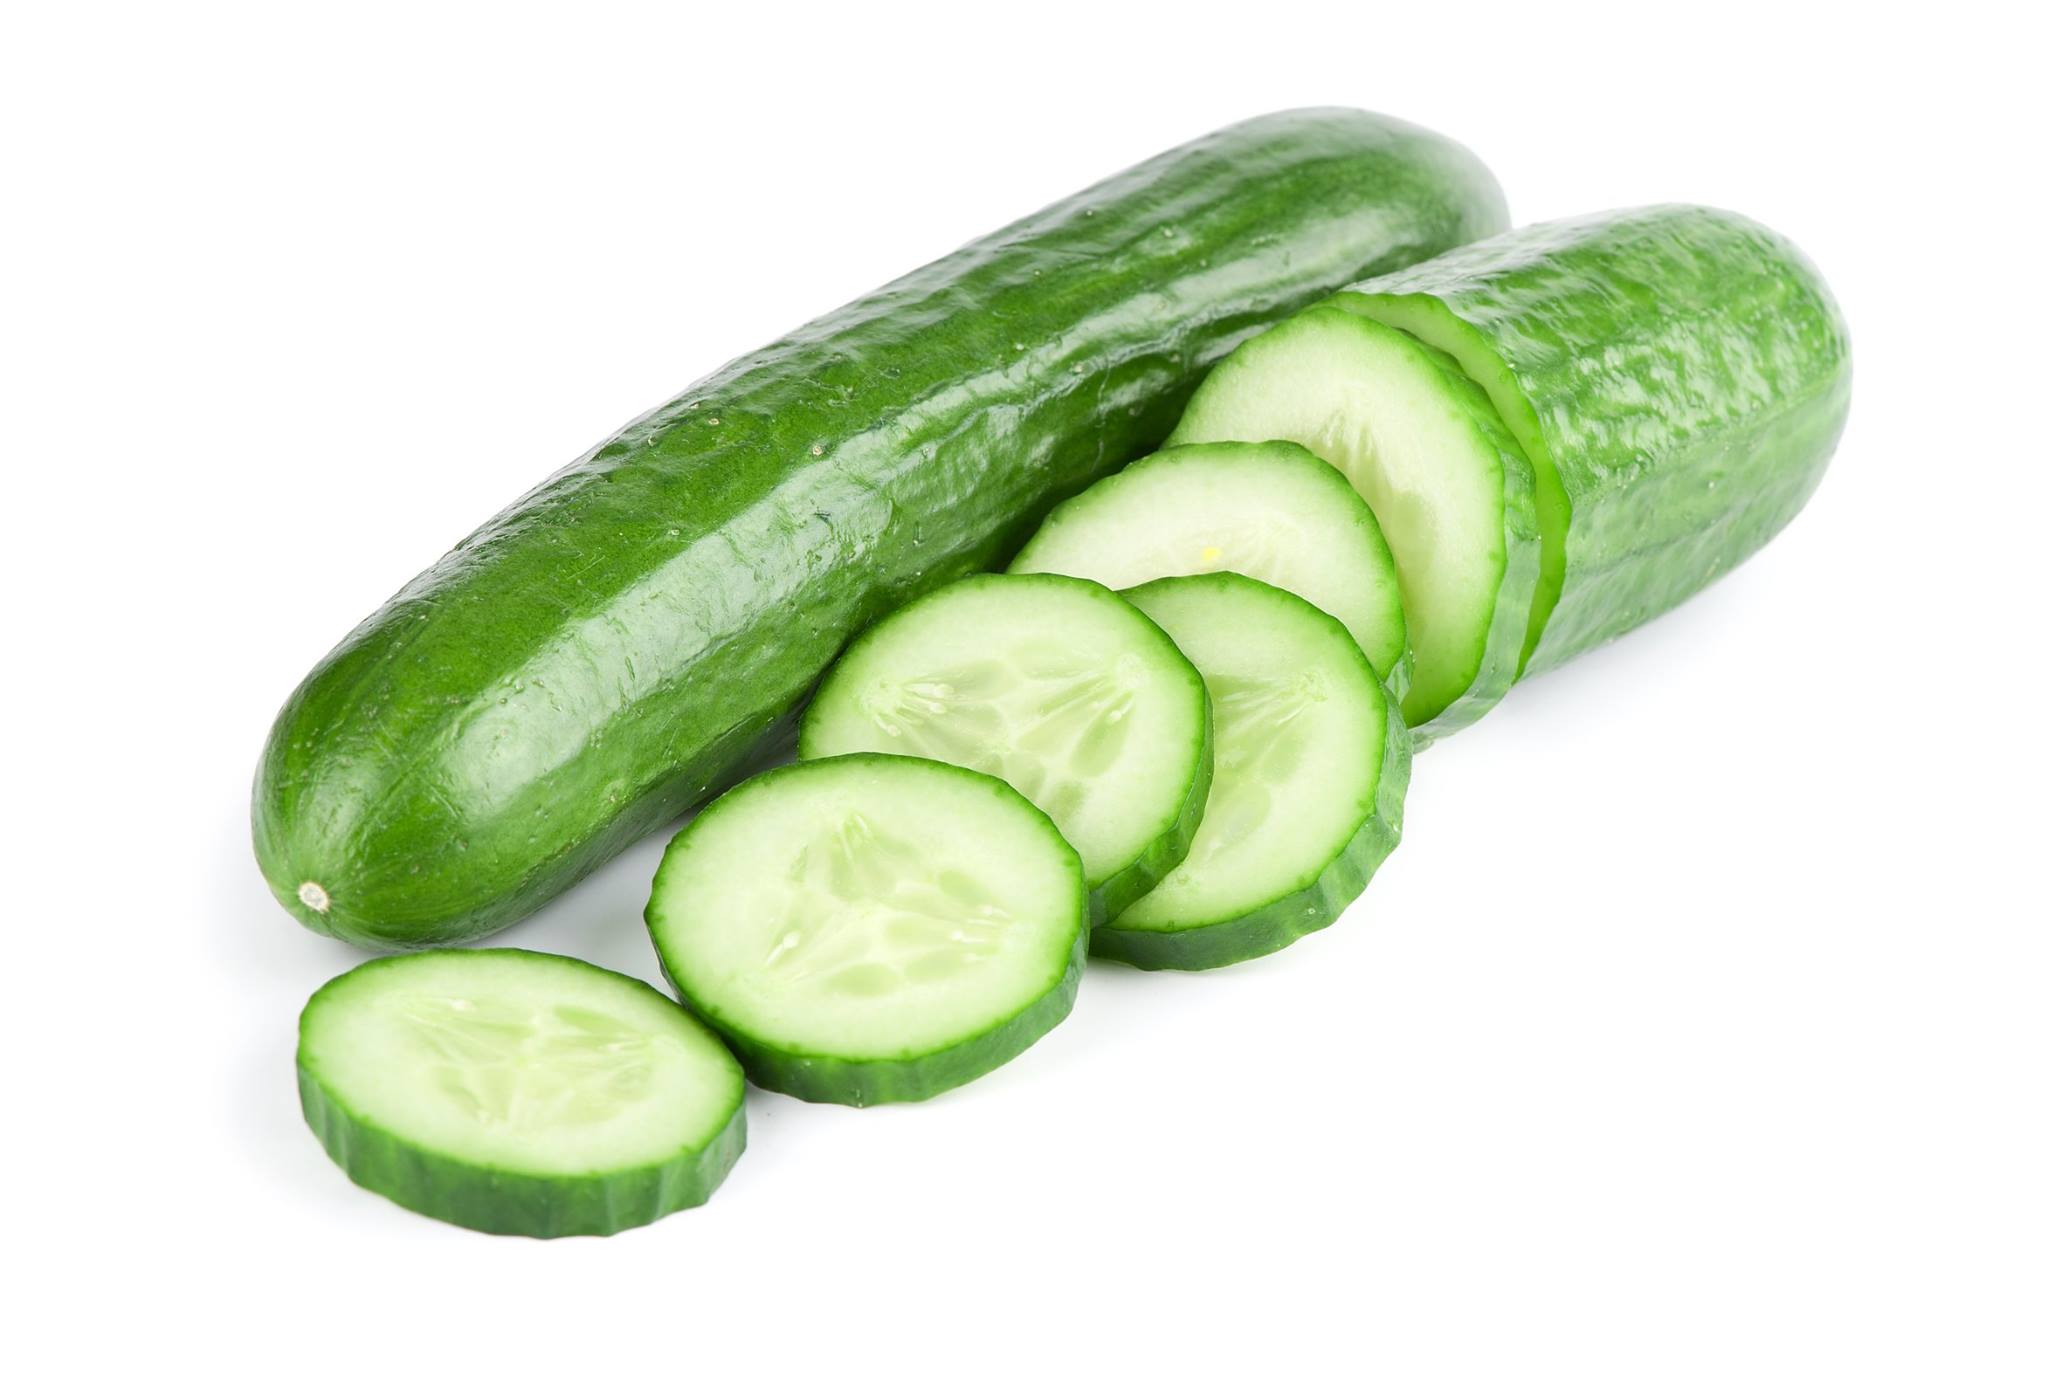 What are the health benefits of cucumber?